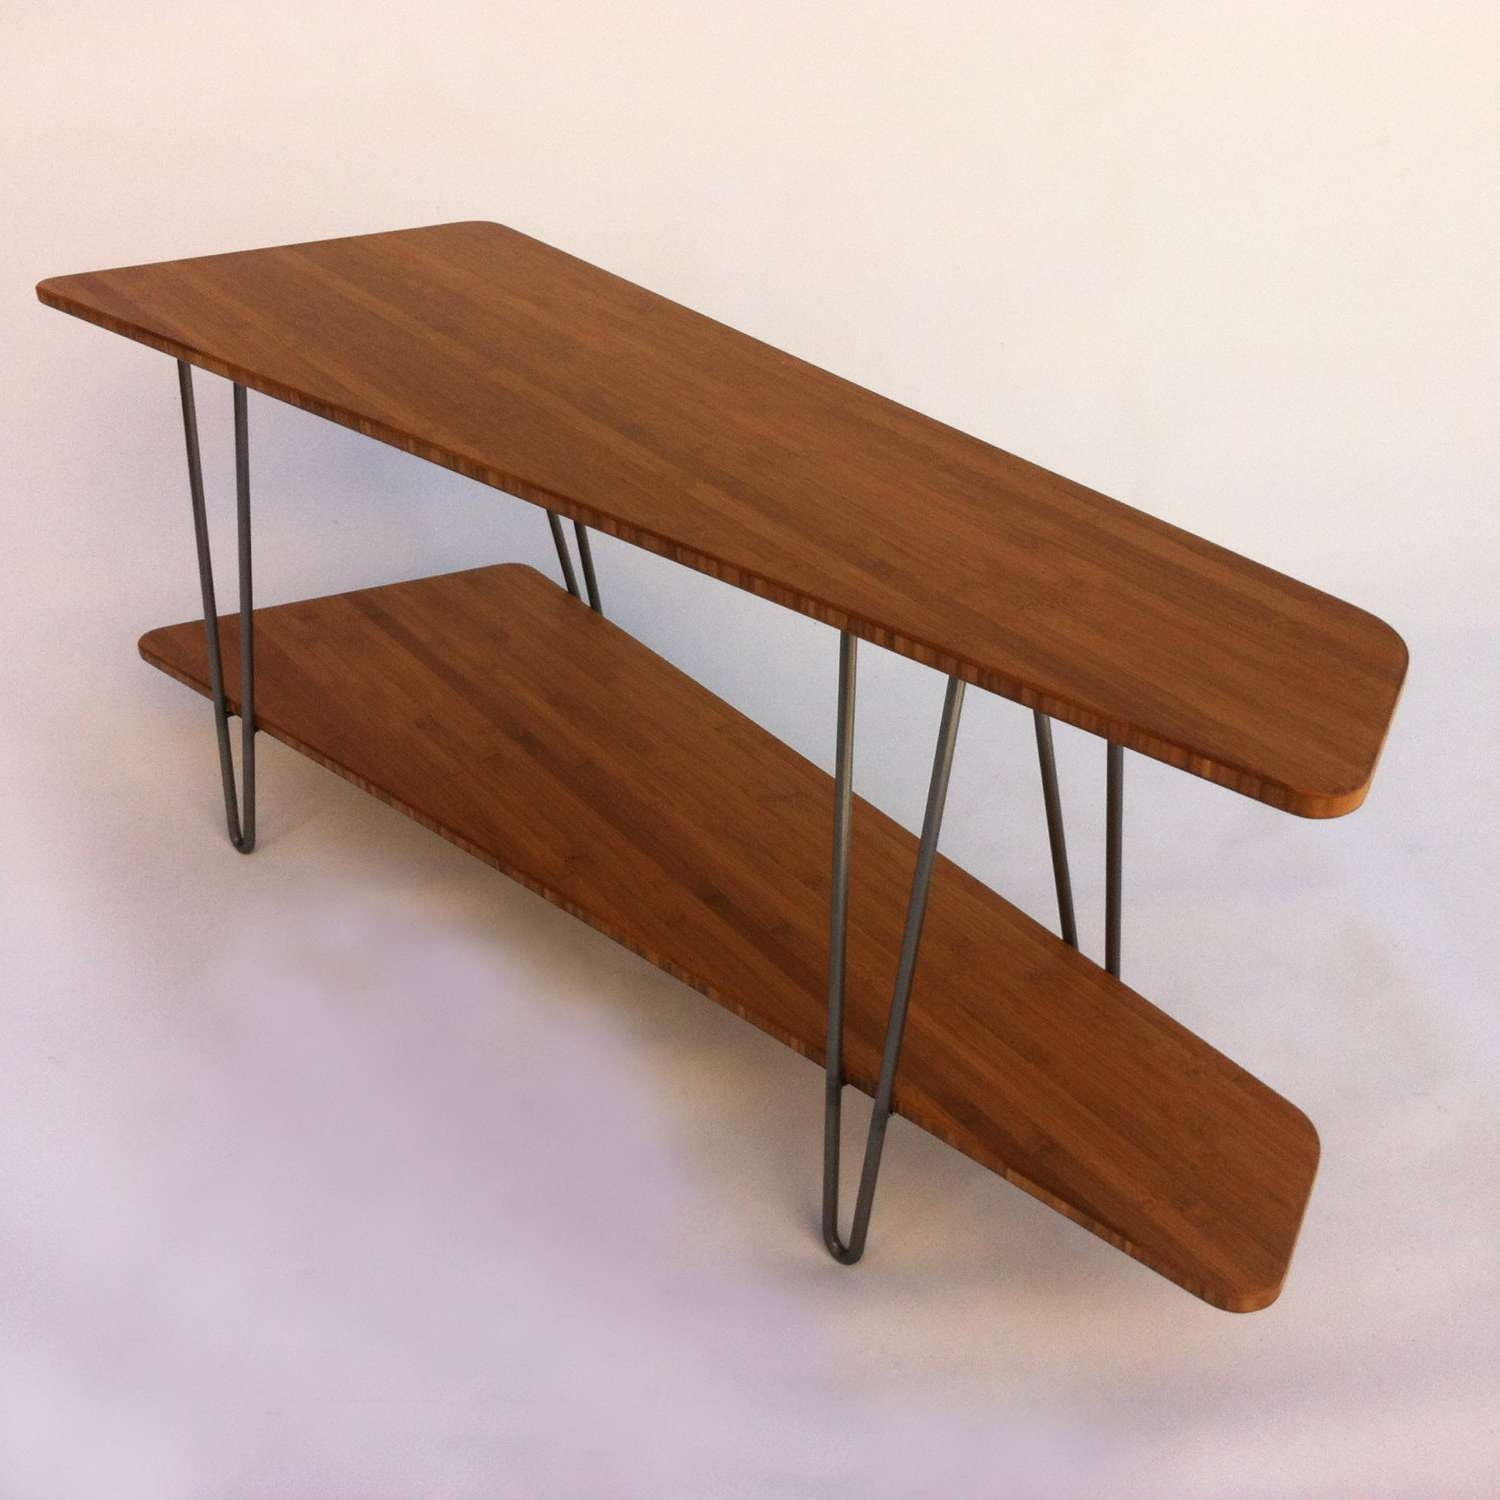 Contemporary Mid Century Modern Tv Stand Media Console With Shelf Within Hairpin Leg Tv Stands (View 15 of 15)